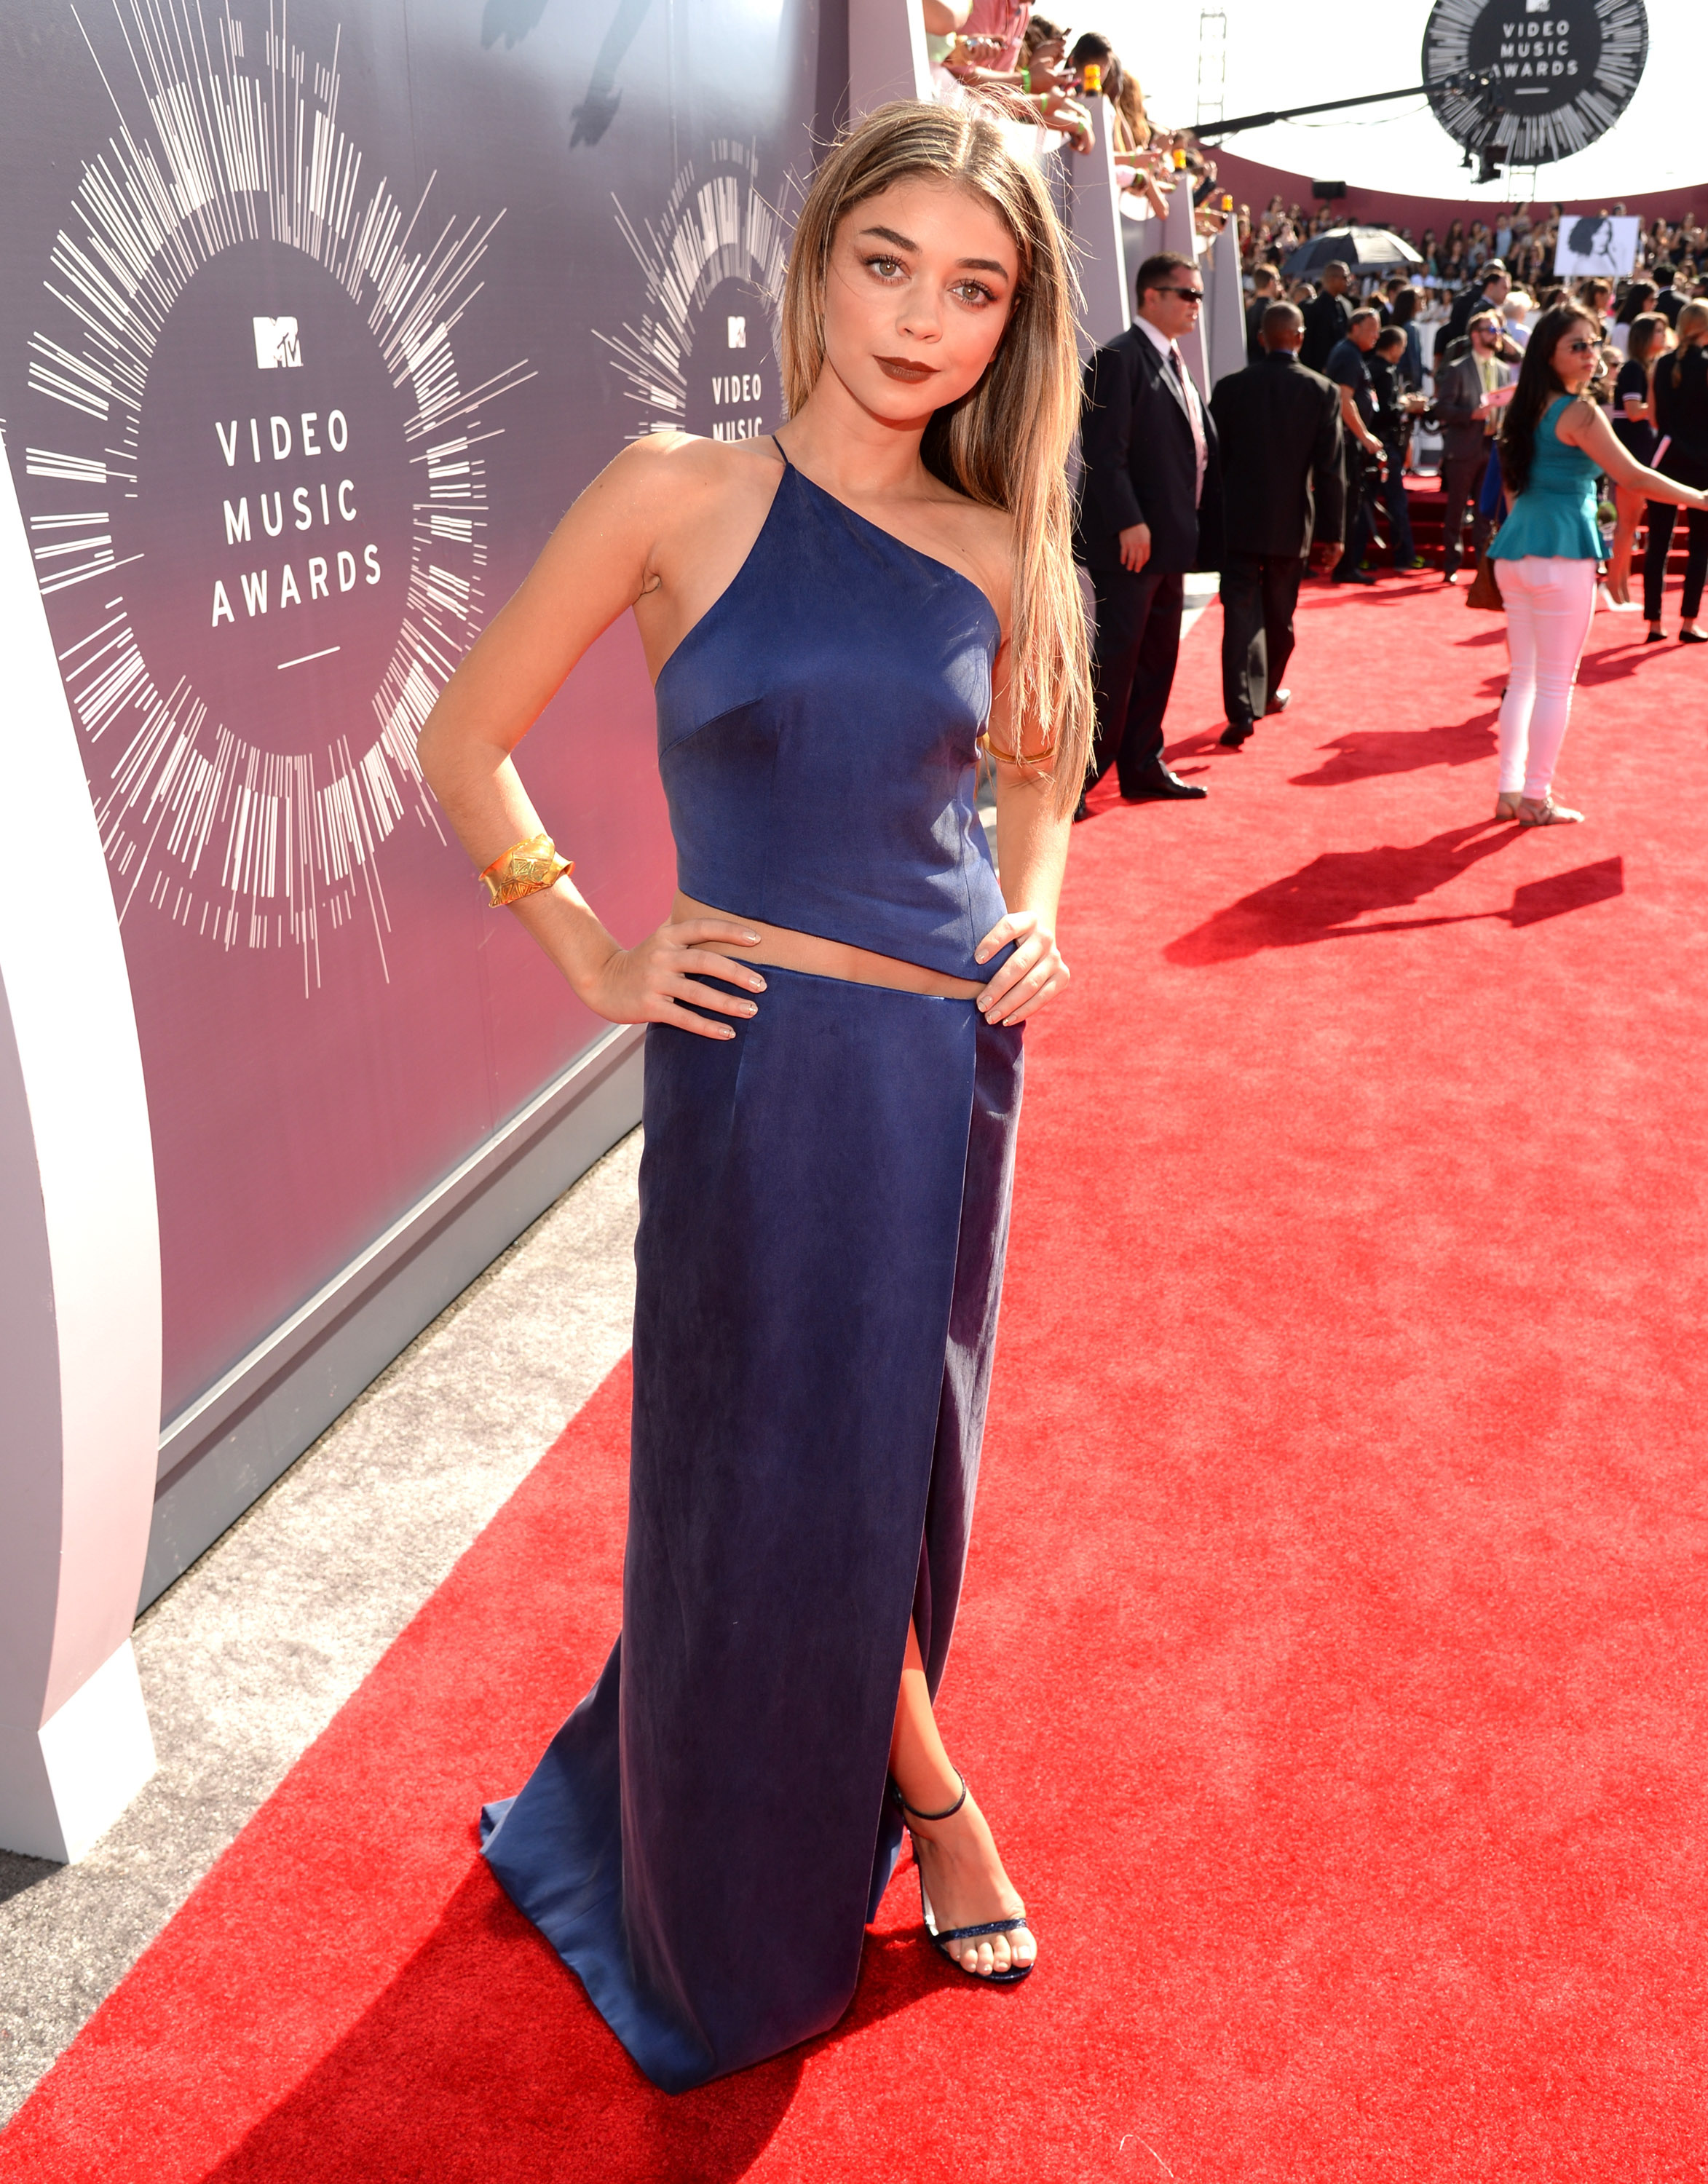 Sarah Hyland attends the 2014 MTV Video Music Awards at The Forum on August 24, 2014 in Inglewood, California.